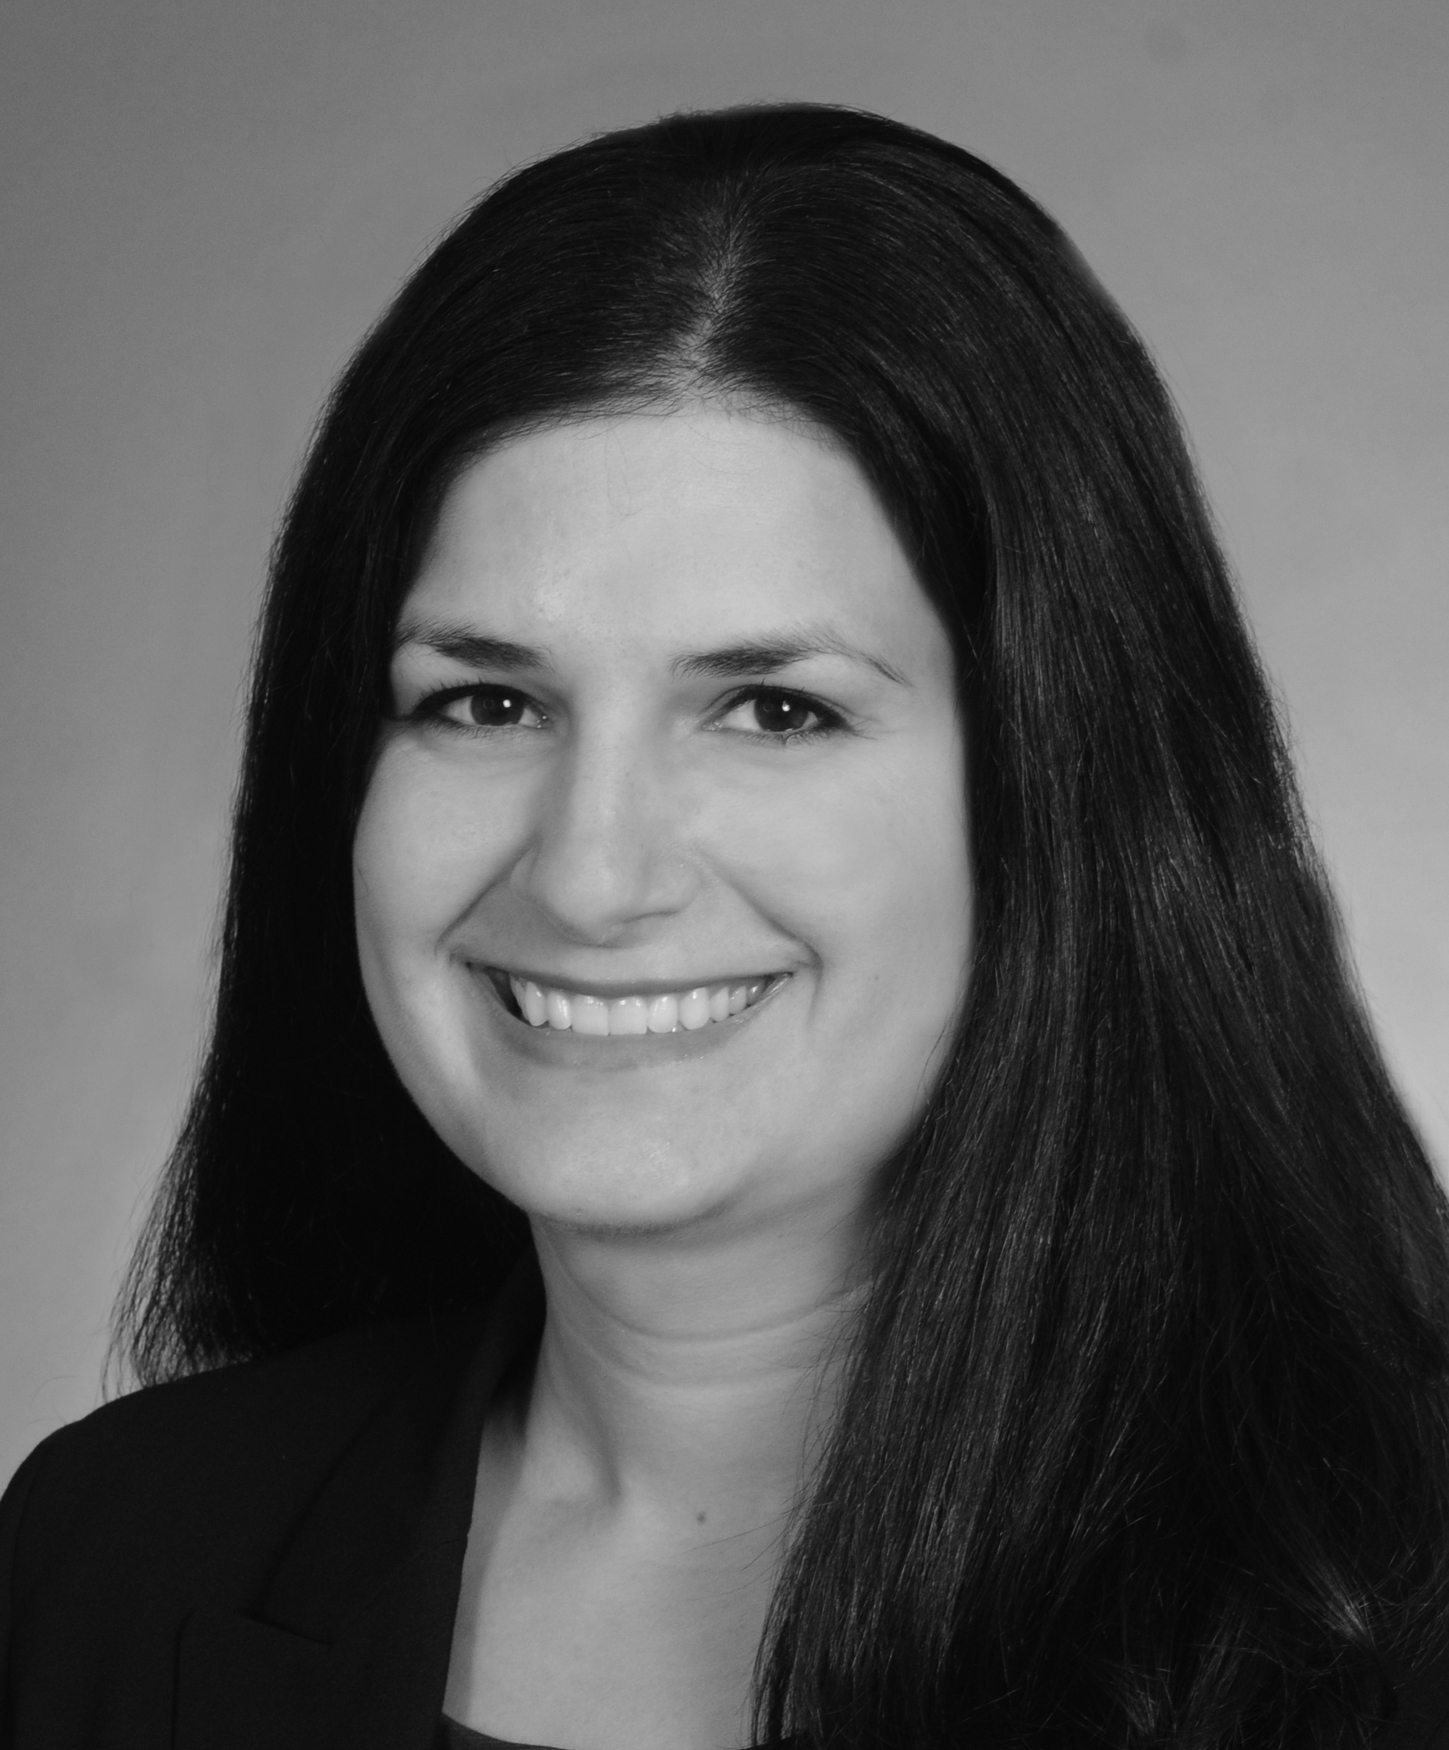 Carrie M. Hobbs Associate Carrie Hobbs is an associate with the firm's Litigation practice with a focus on business litigation. PROFESSIONAL LEADERSHIP The William L.